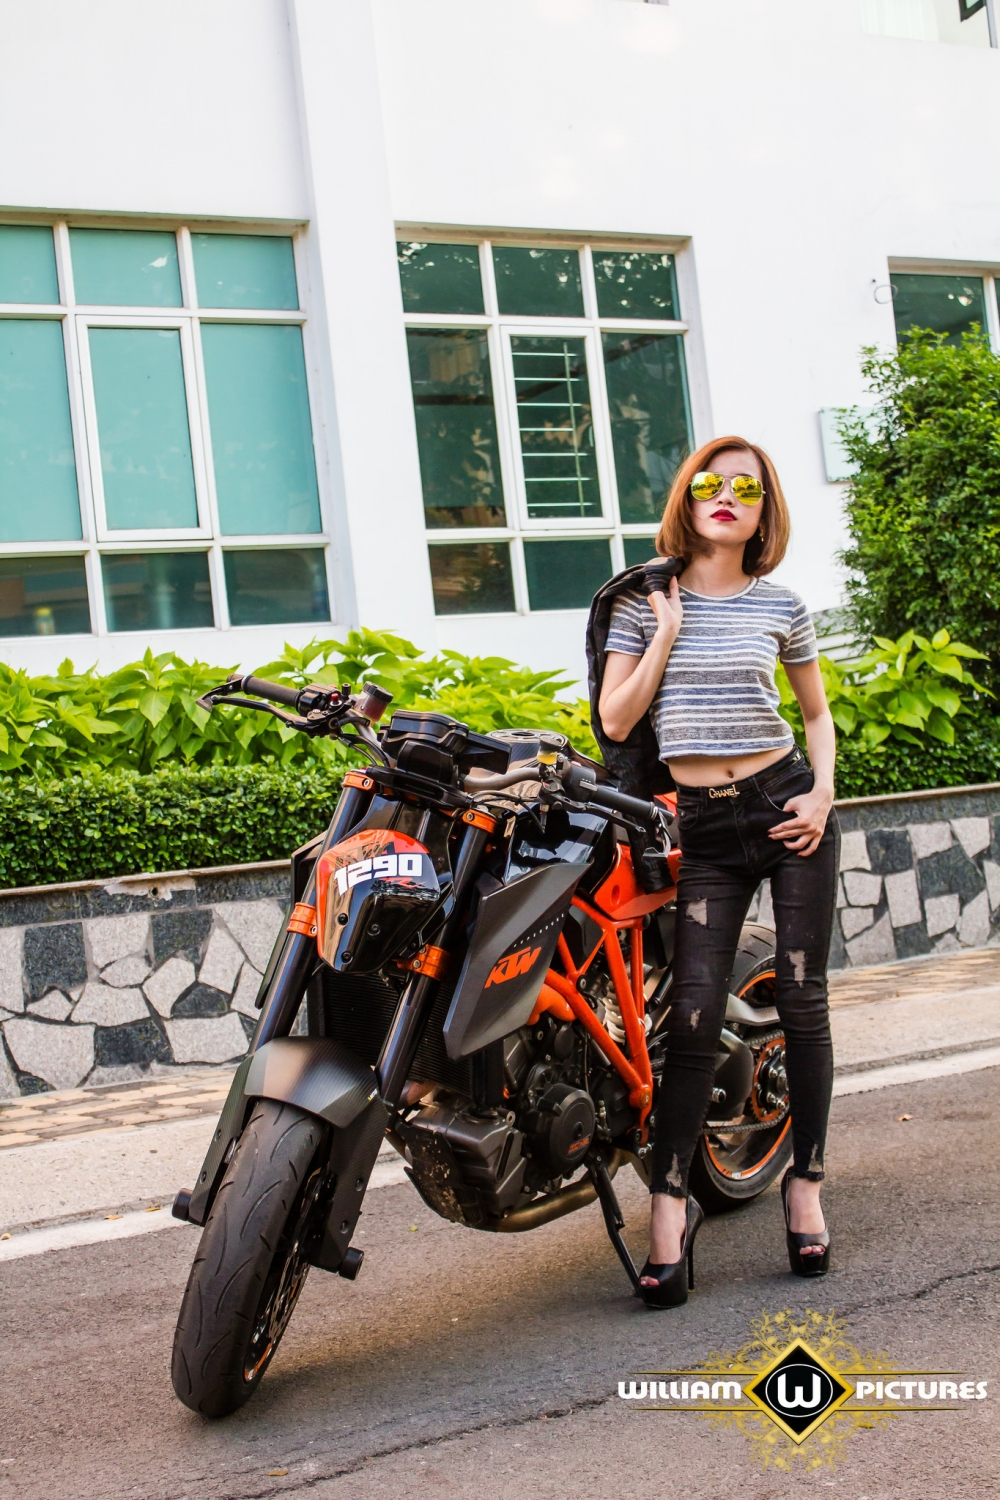 KTM 1290 Super Duke code but gorgeous in the photos R Angels & Demons - LovelyMotor